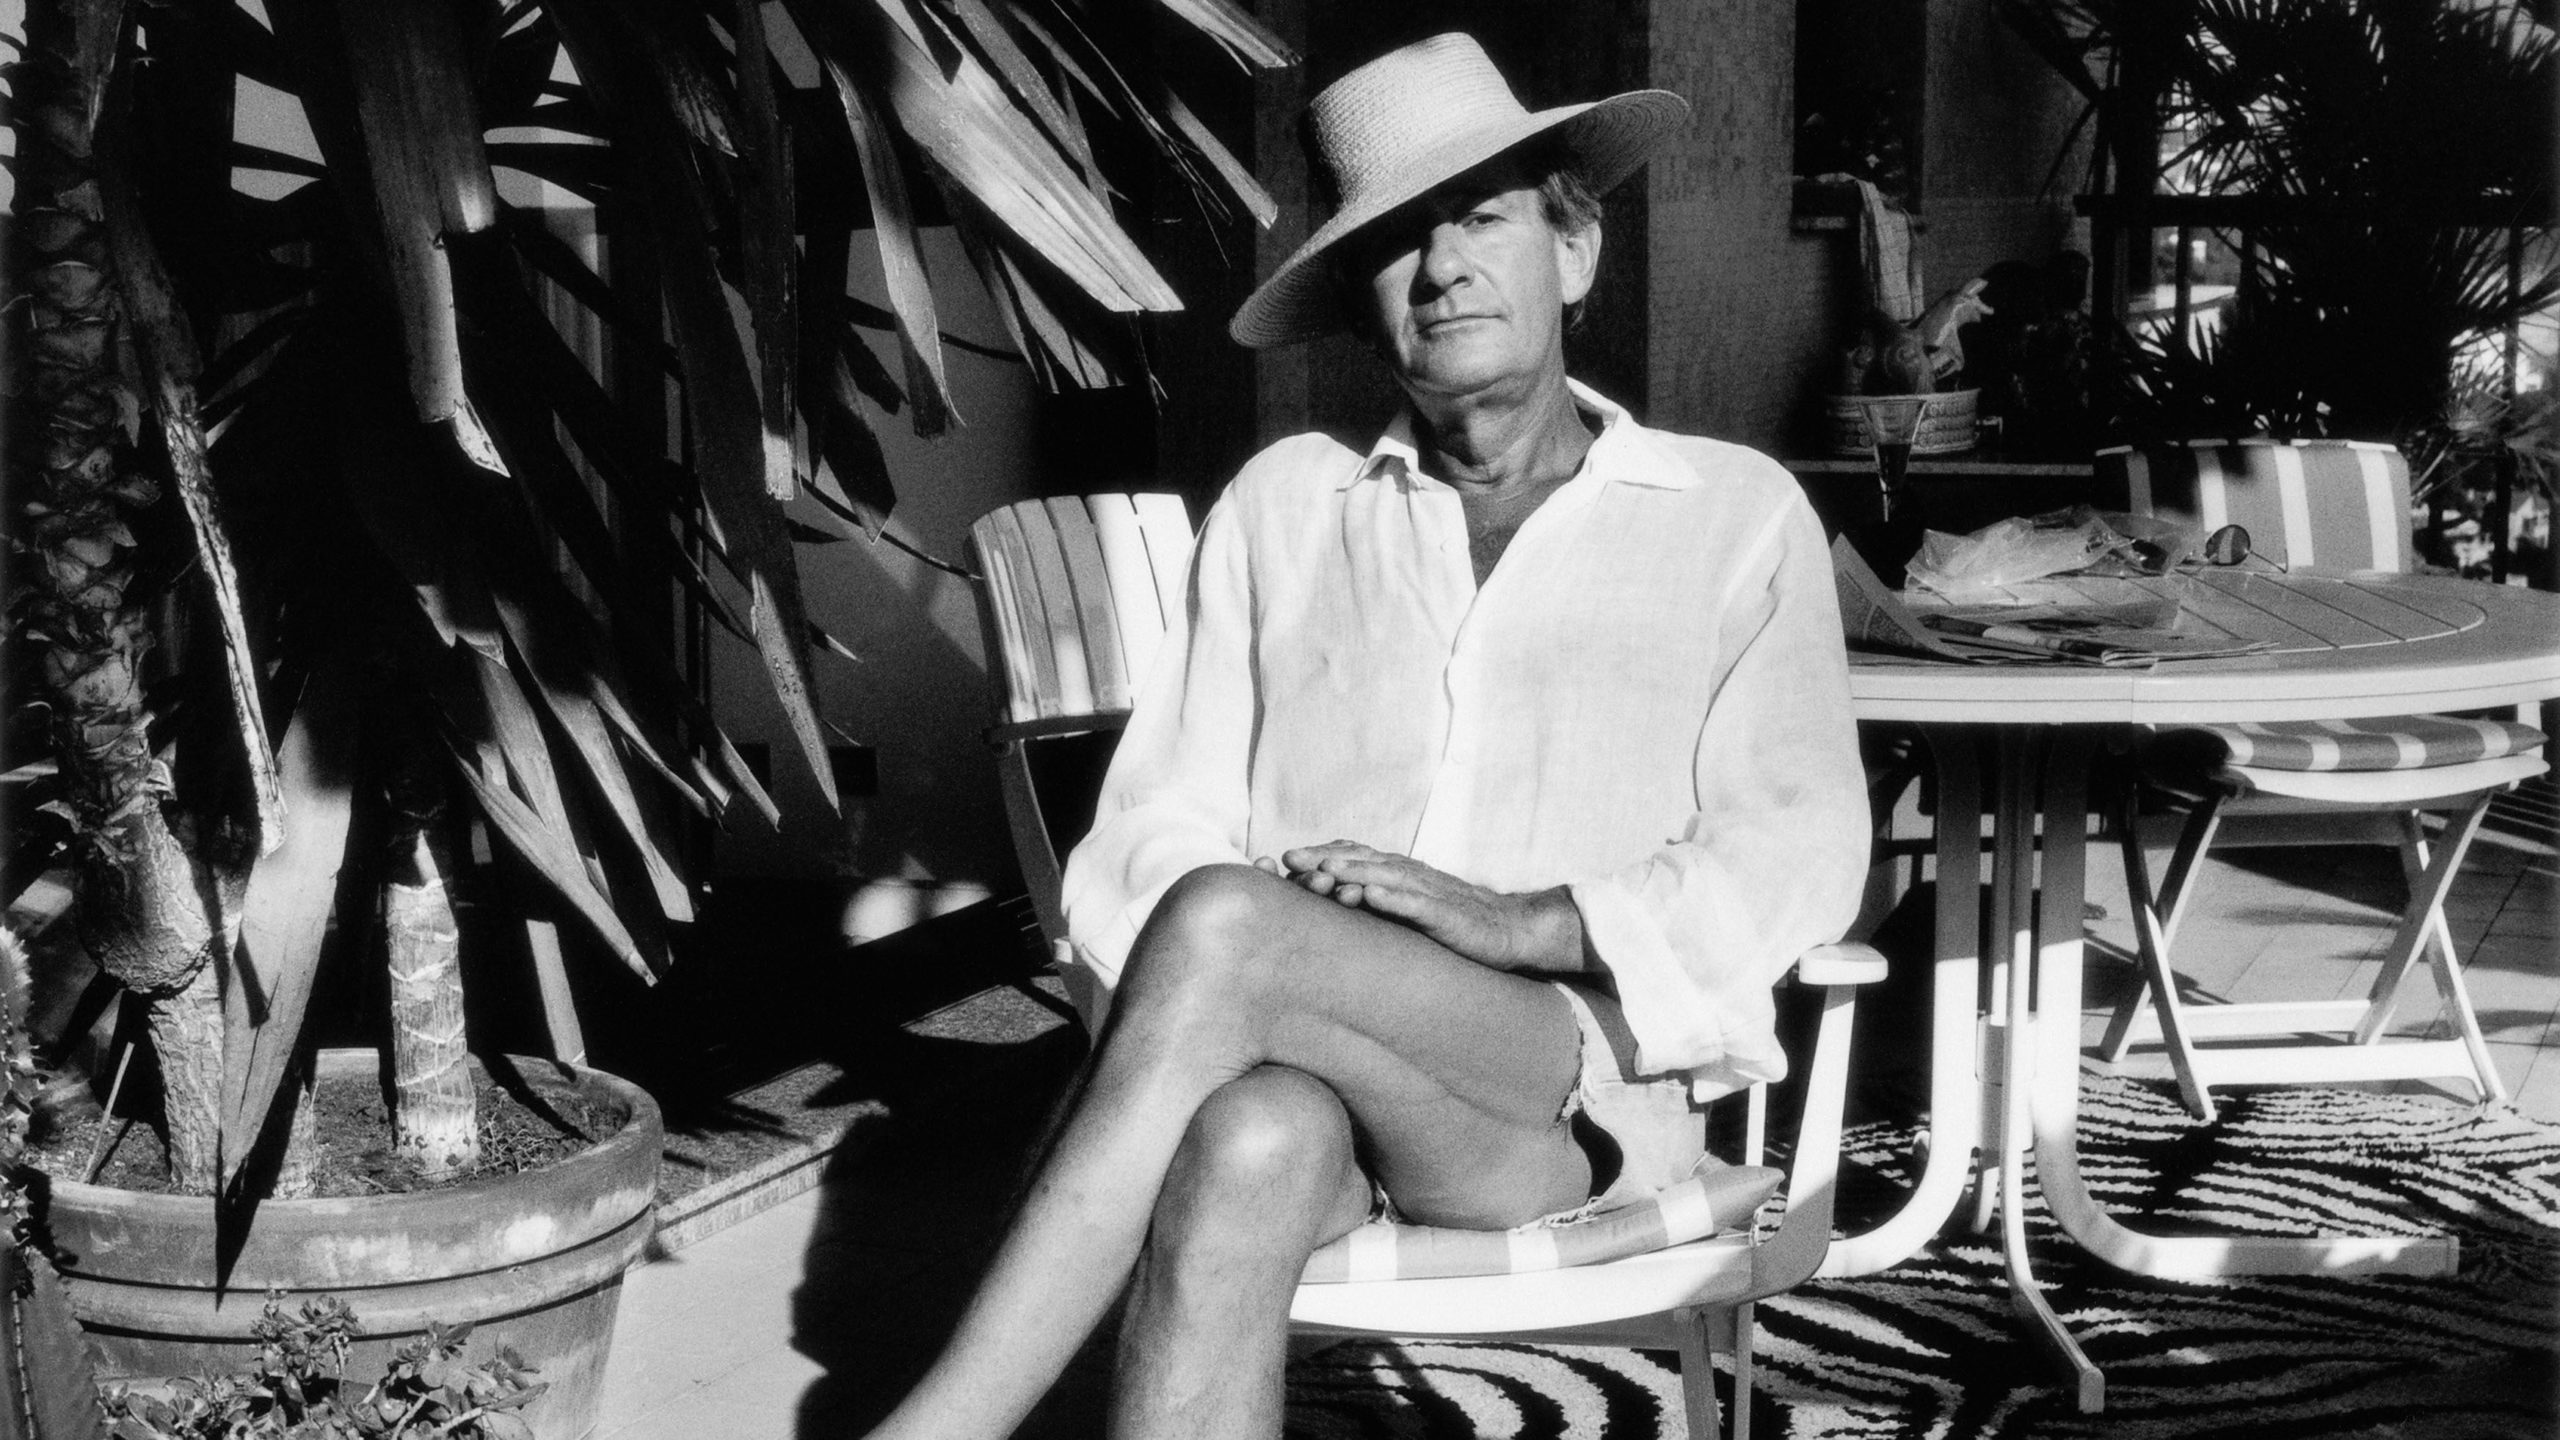 Regarder Helmut Newton: The Bad and the Beautiful en streaming gratuit